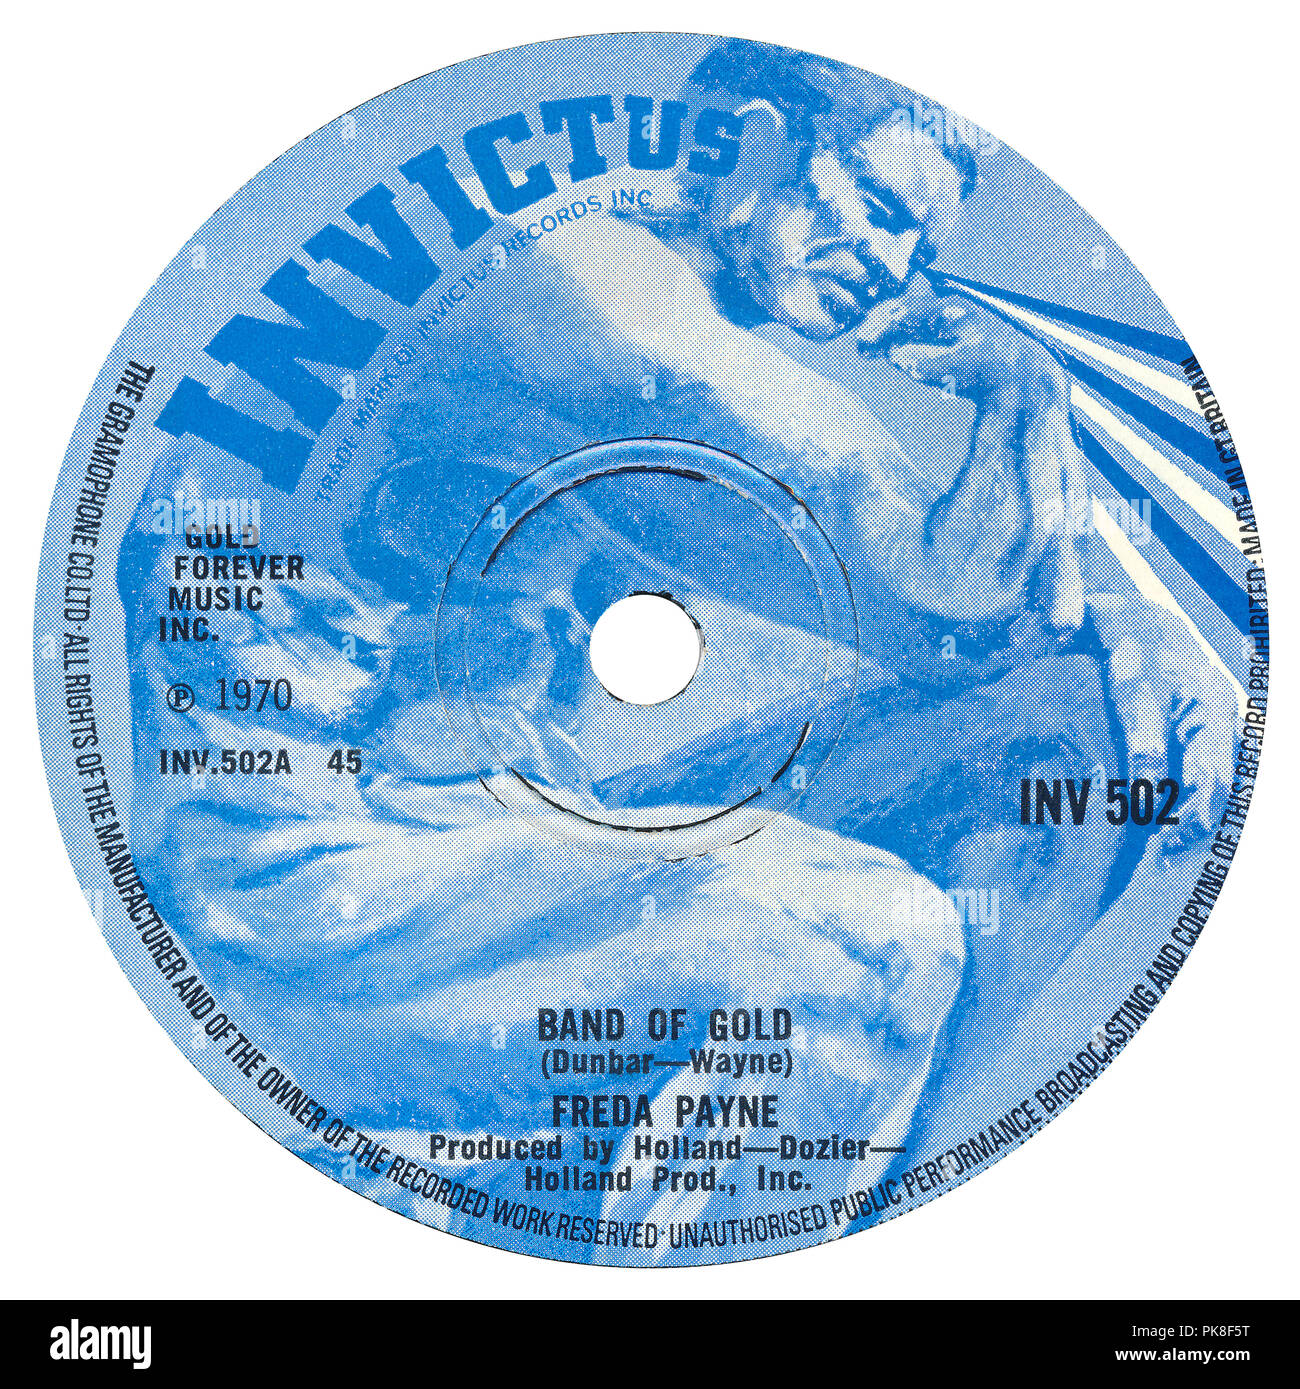 """UK 45 rpm 7"""" single of Band Of Gold by Freda Payne on the Invictus label from 1970. Written by Ron Dunbar and """"Edythe Wayne"""" (a pseudonym for Holland-Dozier-Holland.) Produced by Brian Holland, Lamont Dozier and Eddie Holland. Stock Photo"""